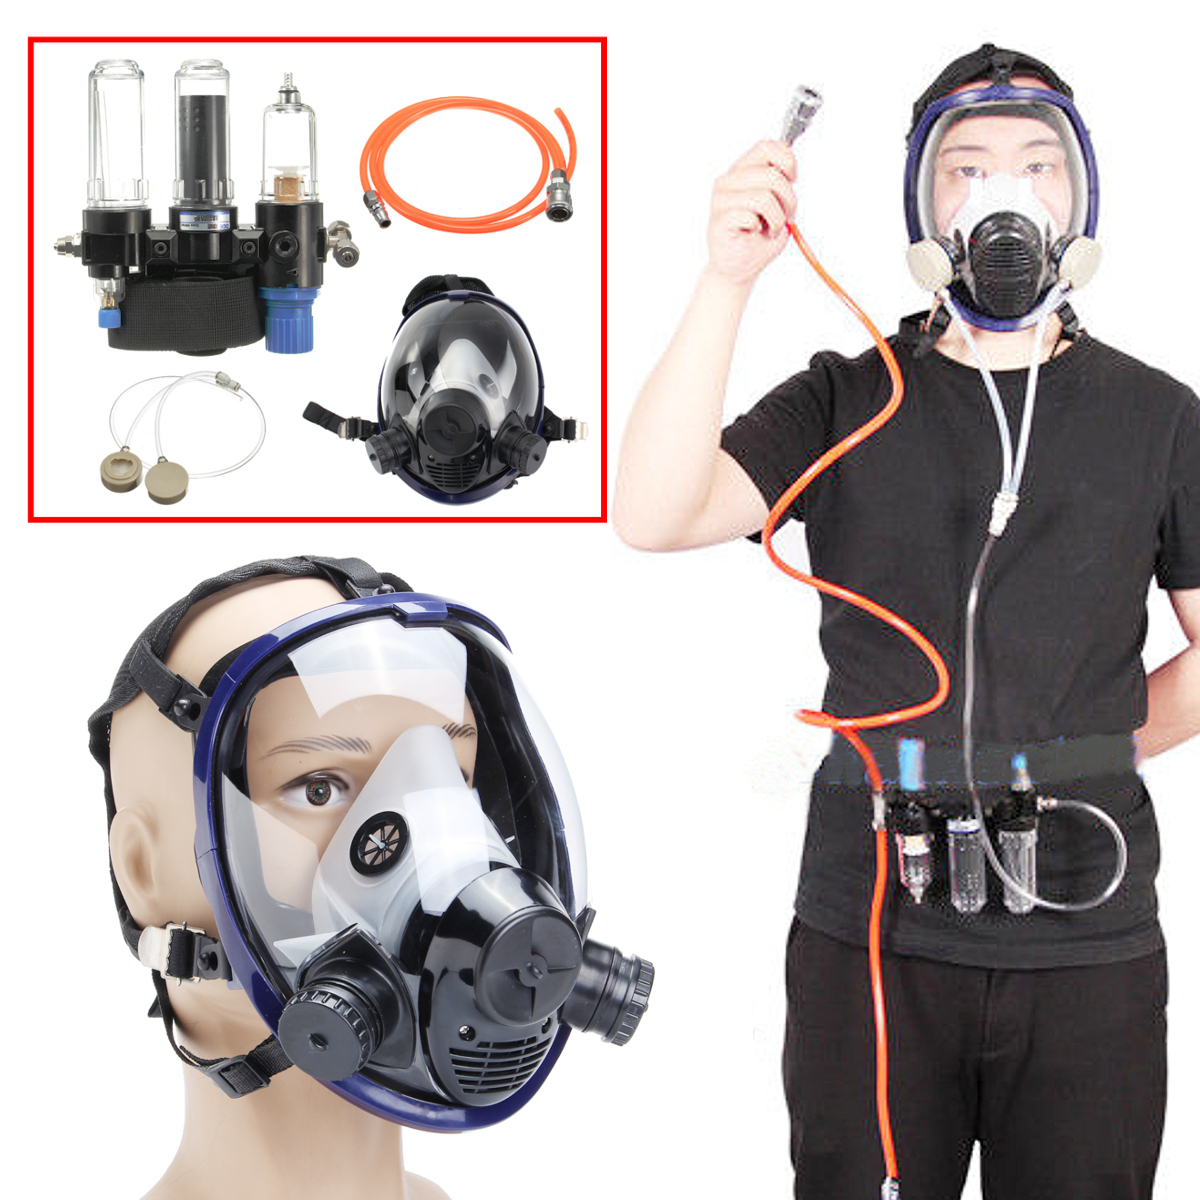 Eachine1 / 3 in 1 Function Supplied Air Fed System Respirator 6800 Full Face Clear Gas Mask